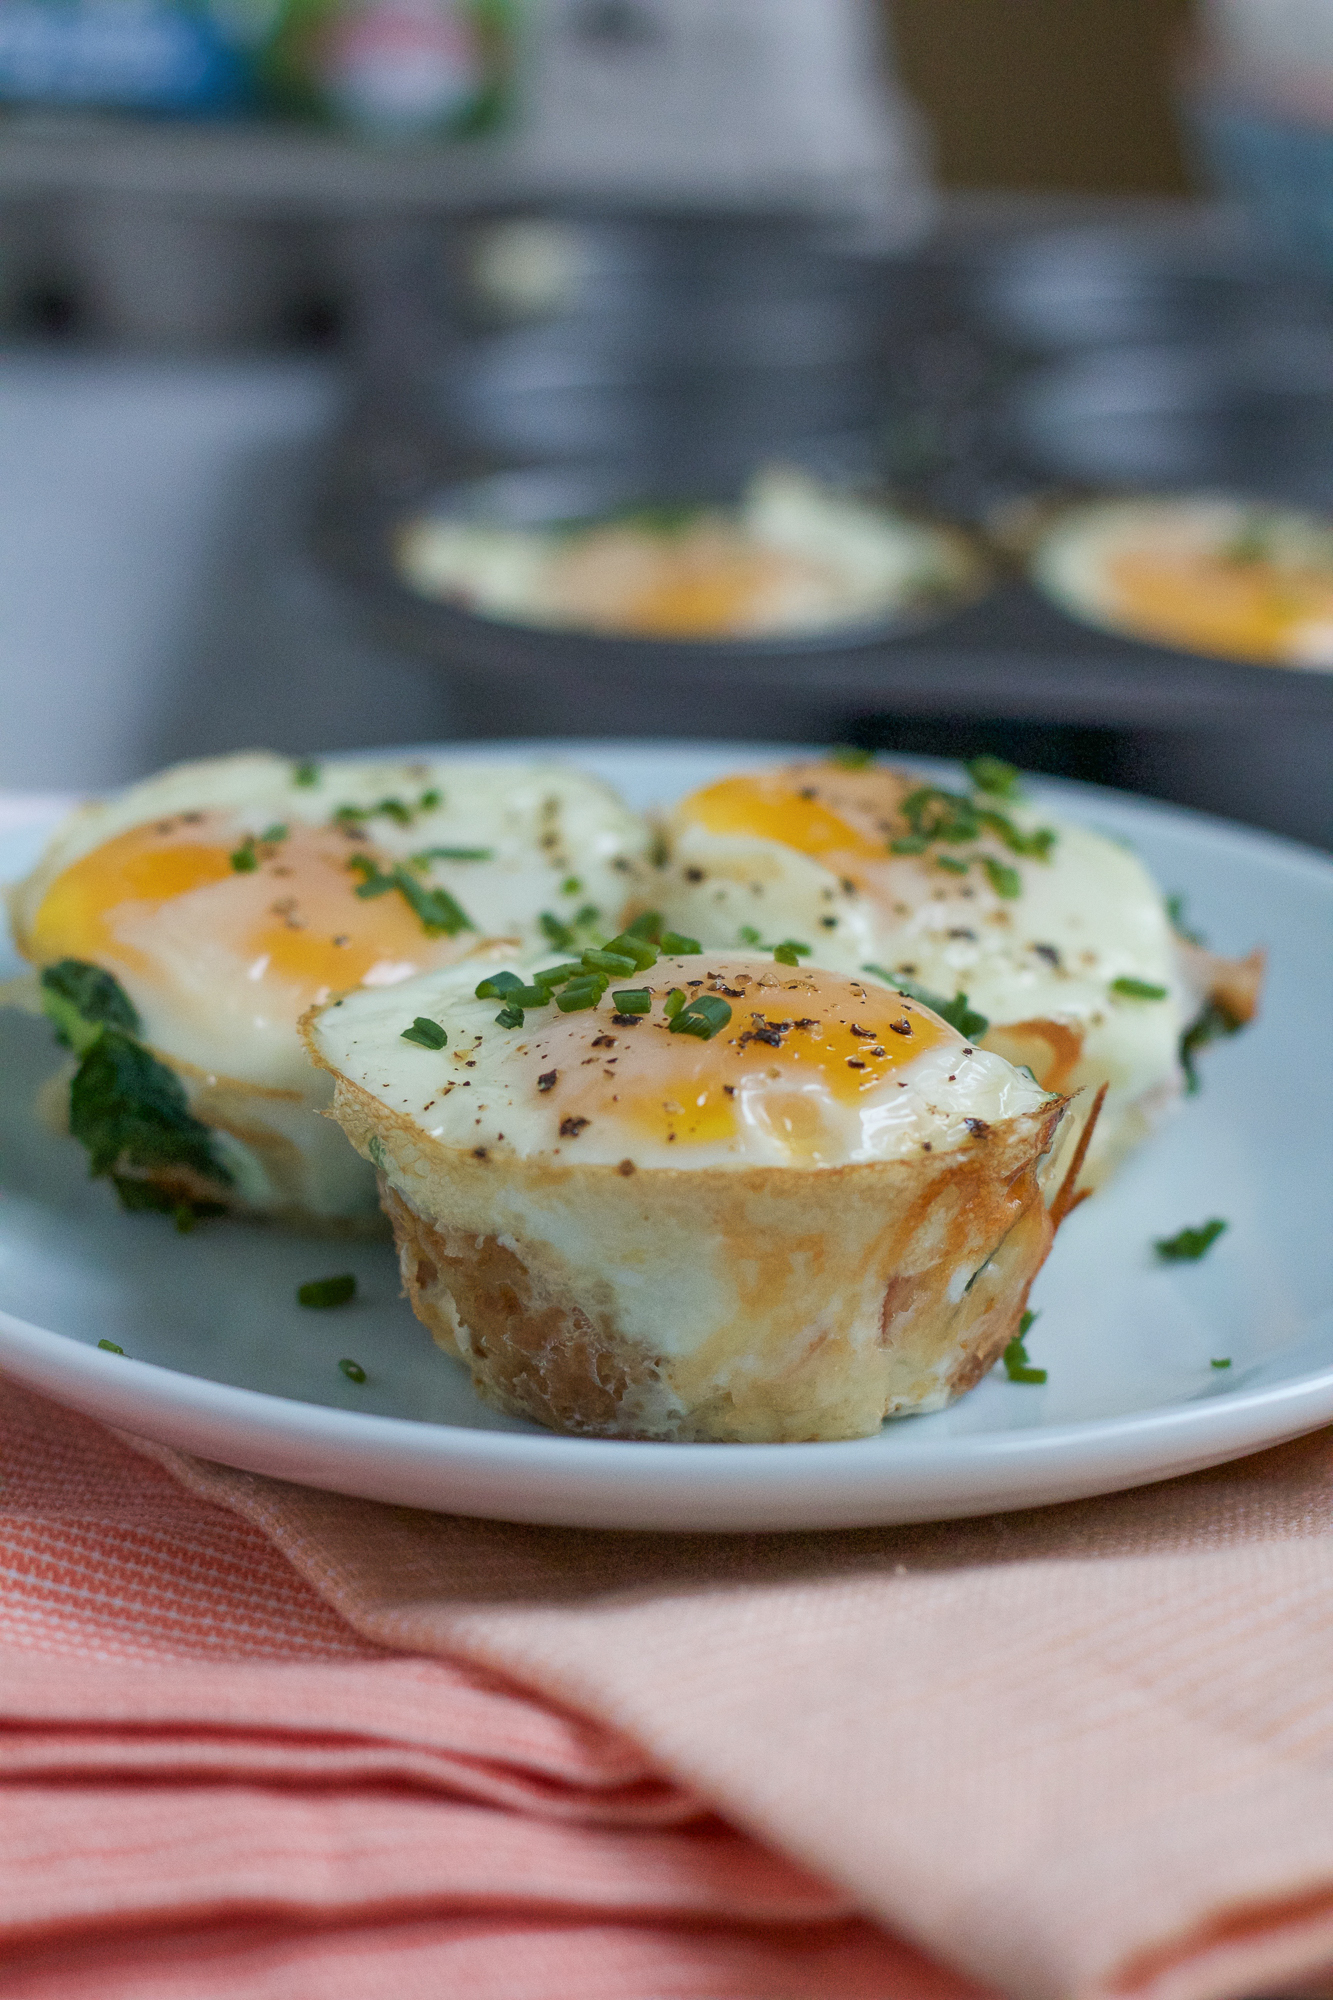 Baked Egg Tater Tot Muffins! Delicious, savory muffins packed with spinach, ham, crispy tater tots and a baked egg on top! Great for breakfast on the go! Your family is going to love these! #spon